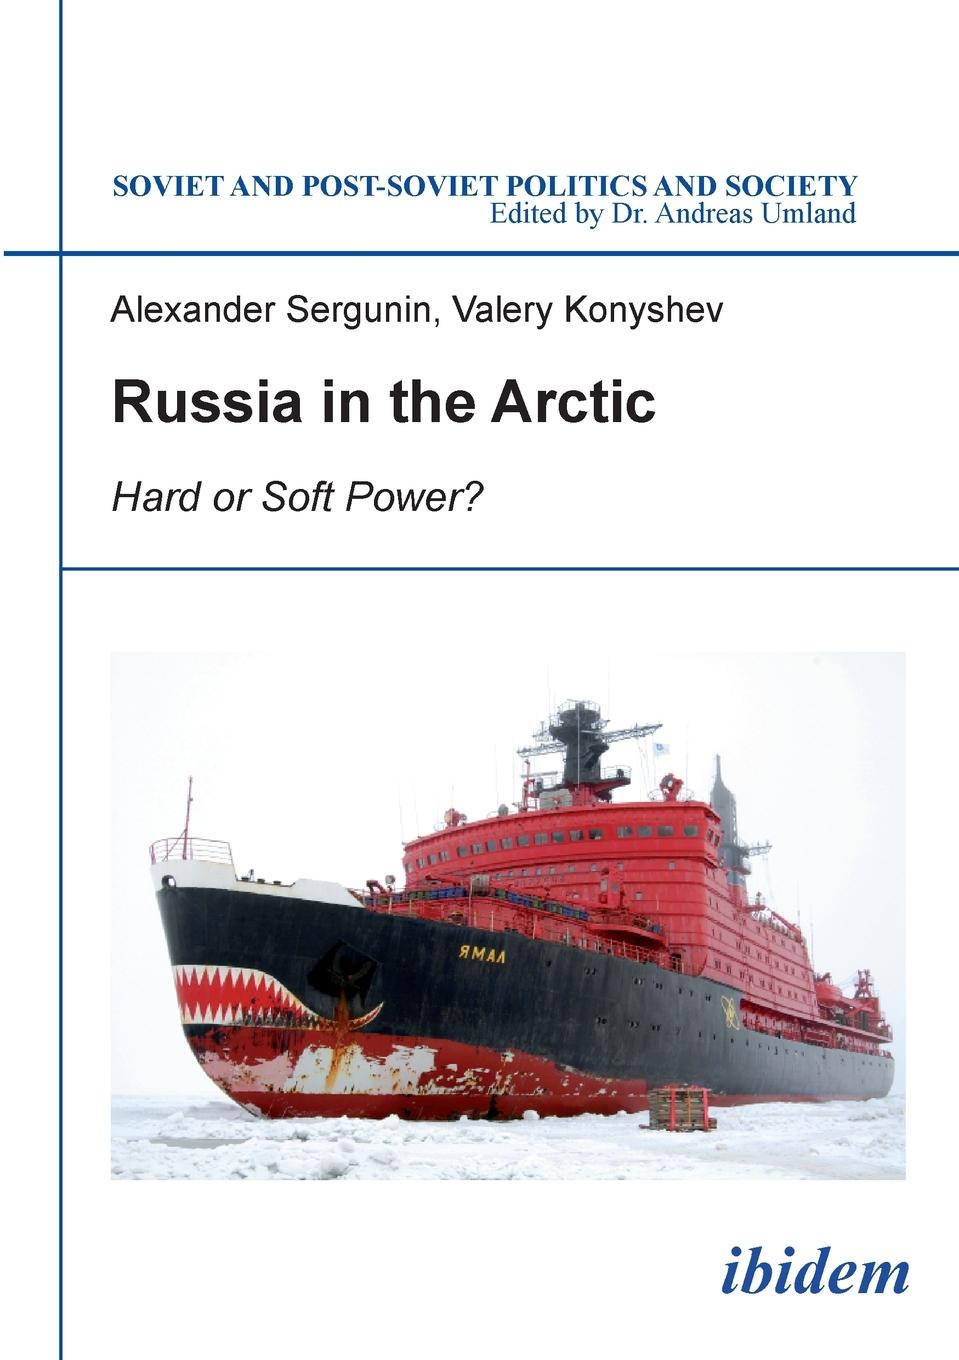 Valery Konyshev, Alexander Sergunin Russia in the Arctic. Hard or Soft Power. sports law in russia